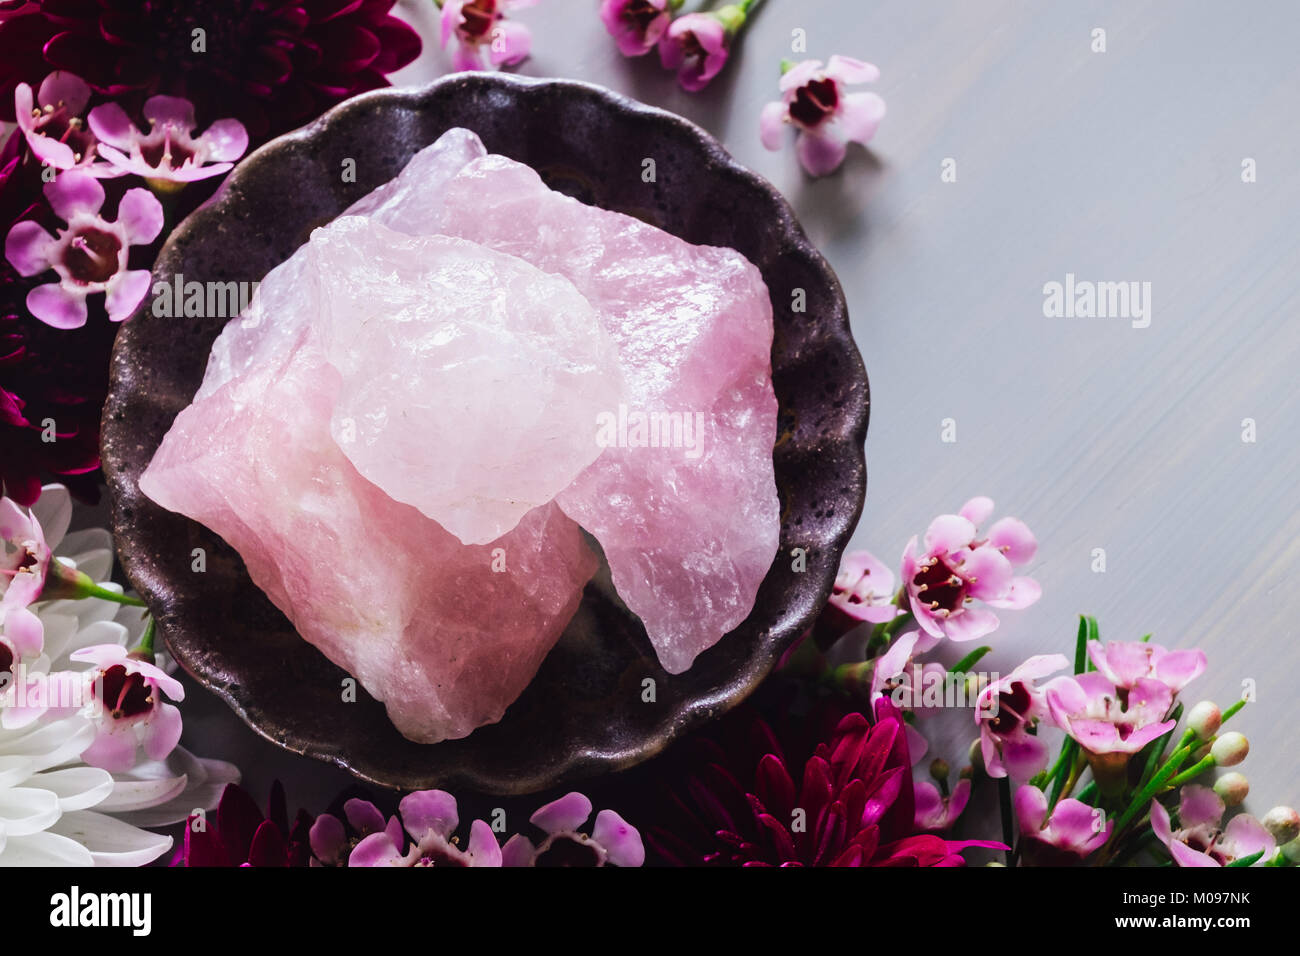 Rough Rose Quartz with Mixed Flowers - Stock Image